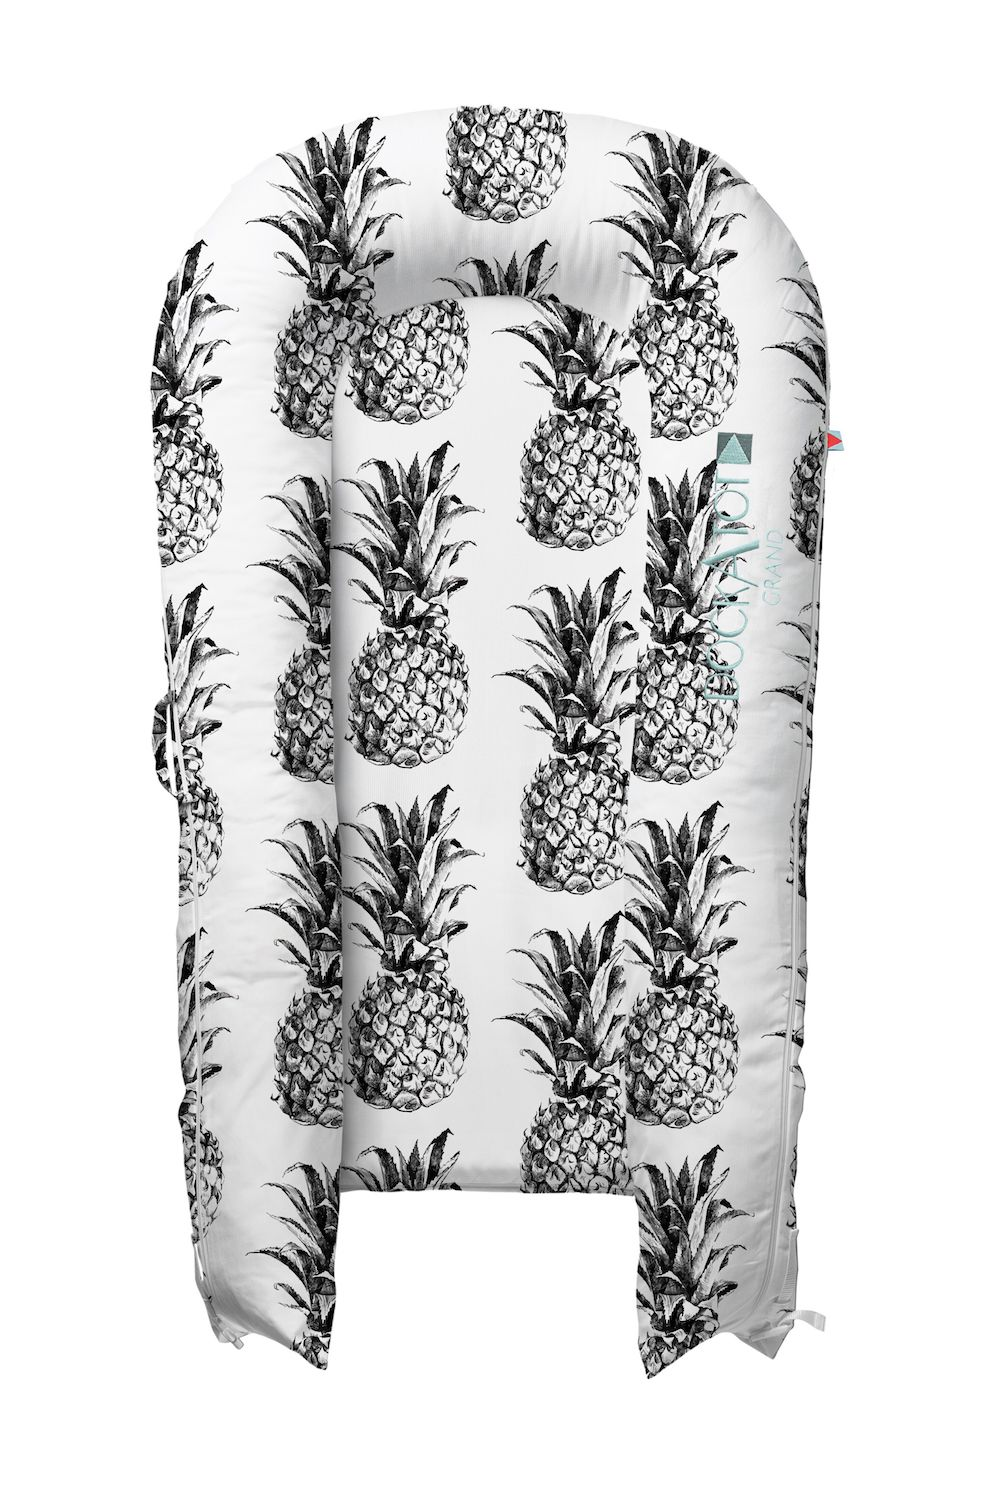 Pineapples, palm leaves, marble: An exclusive look at the new DockATot baby sleepers